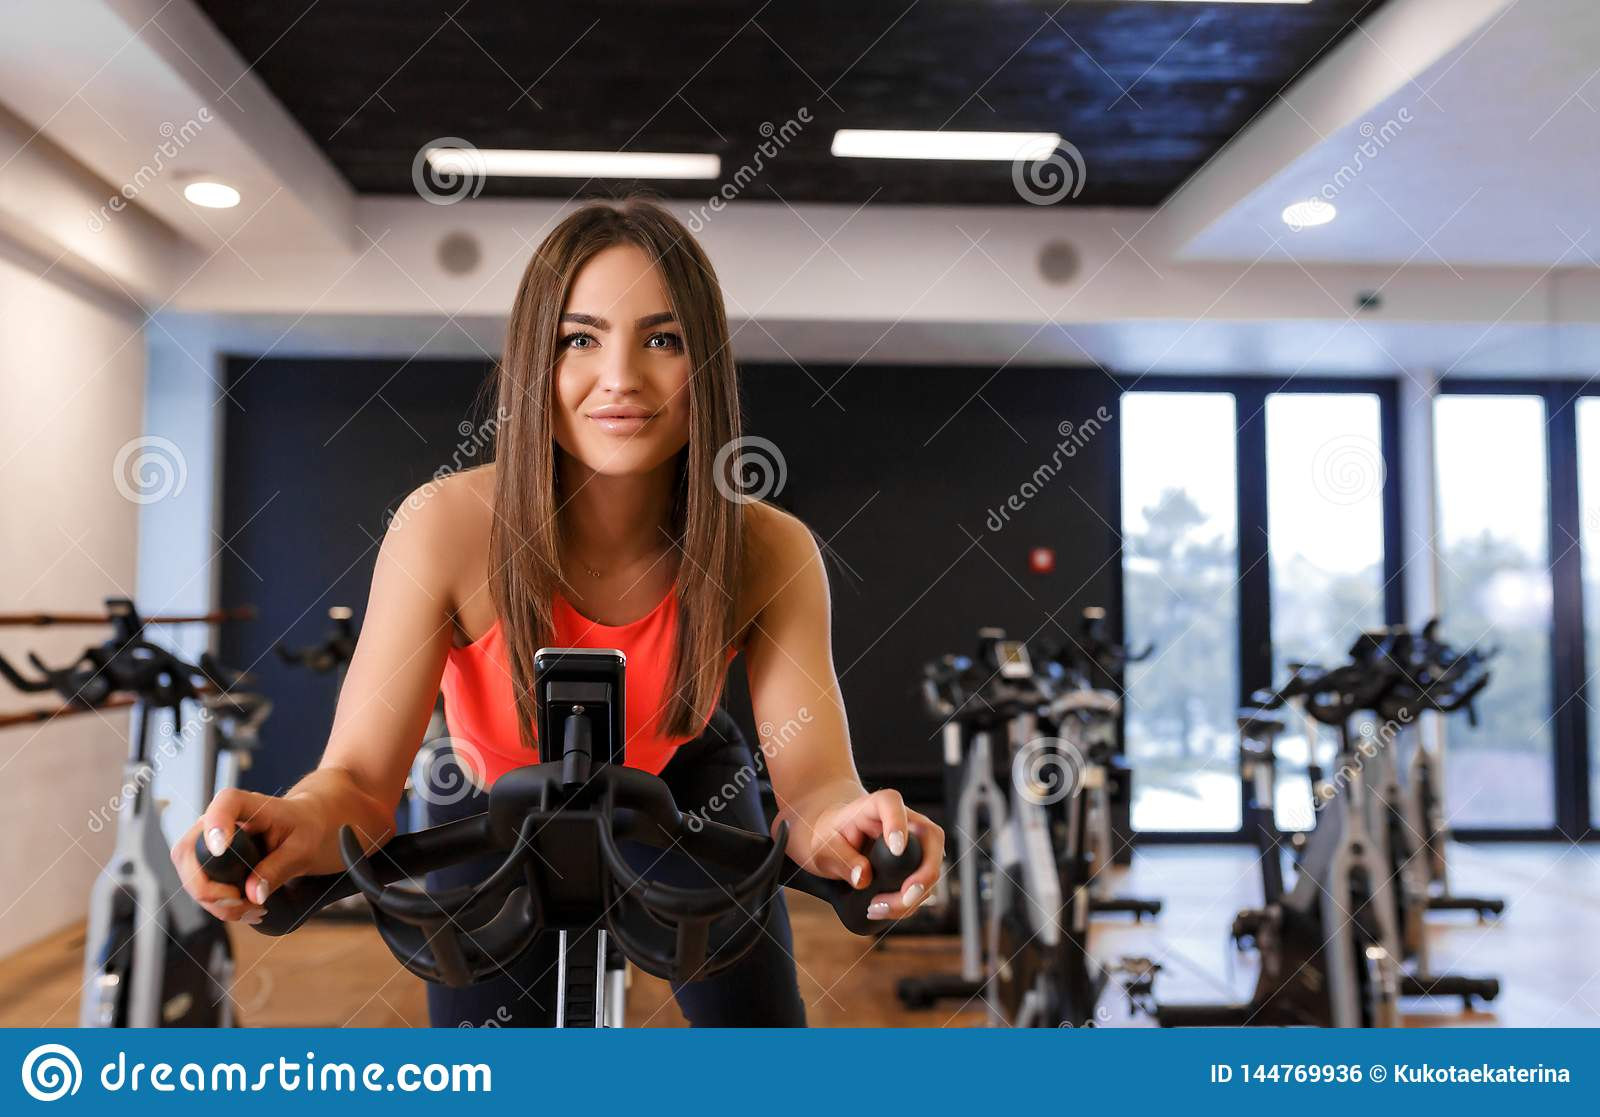 Portrait of young slim woman in sportwear workout on exercise bike in gym. Sport and wellness lifestyle concept